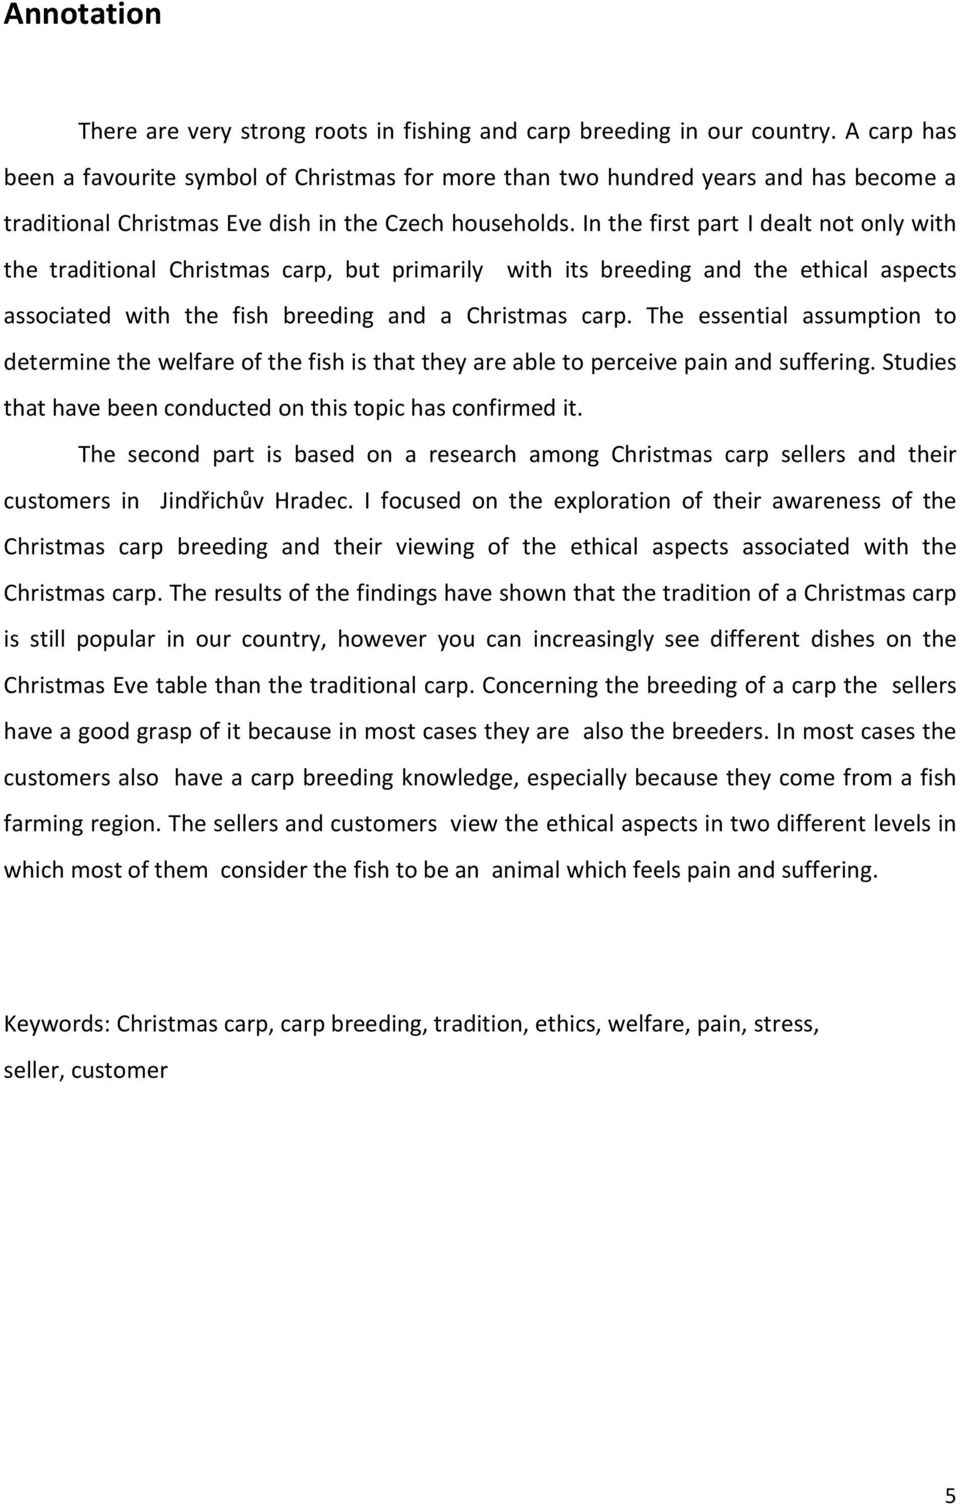 In the first part I dealt not only with the traditional Christmas carp, but primarily with its breeding and the ethical aspects associated with the fish breeding and a Christmas carp.